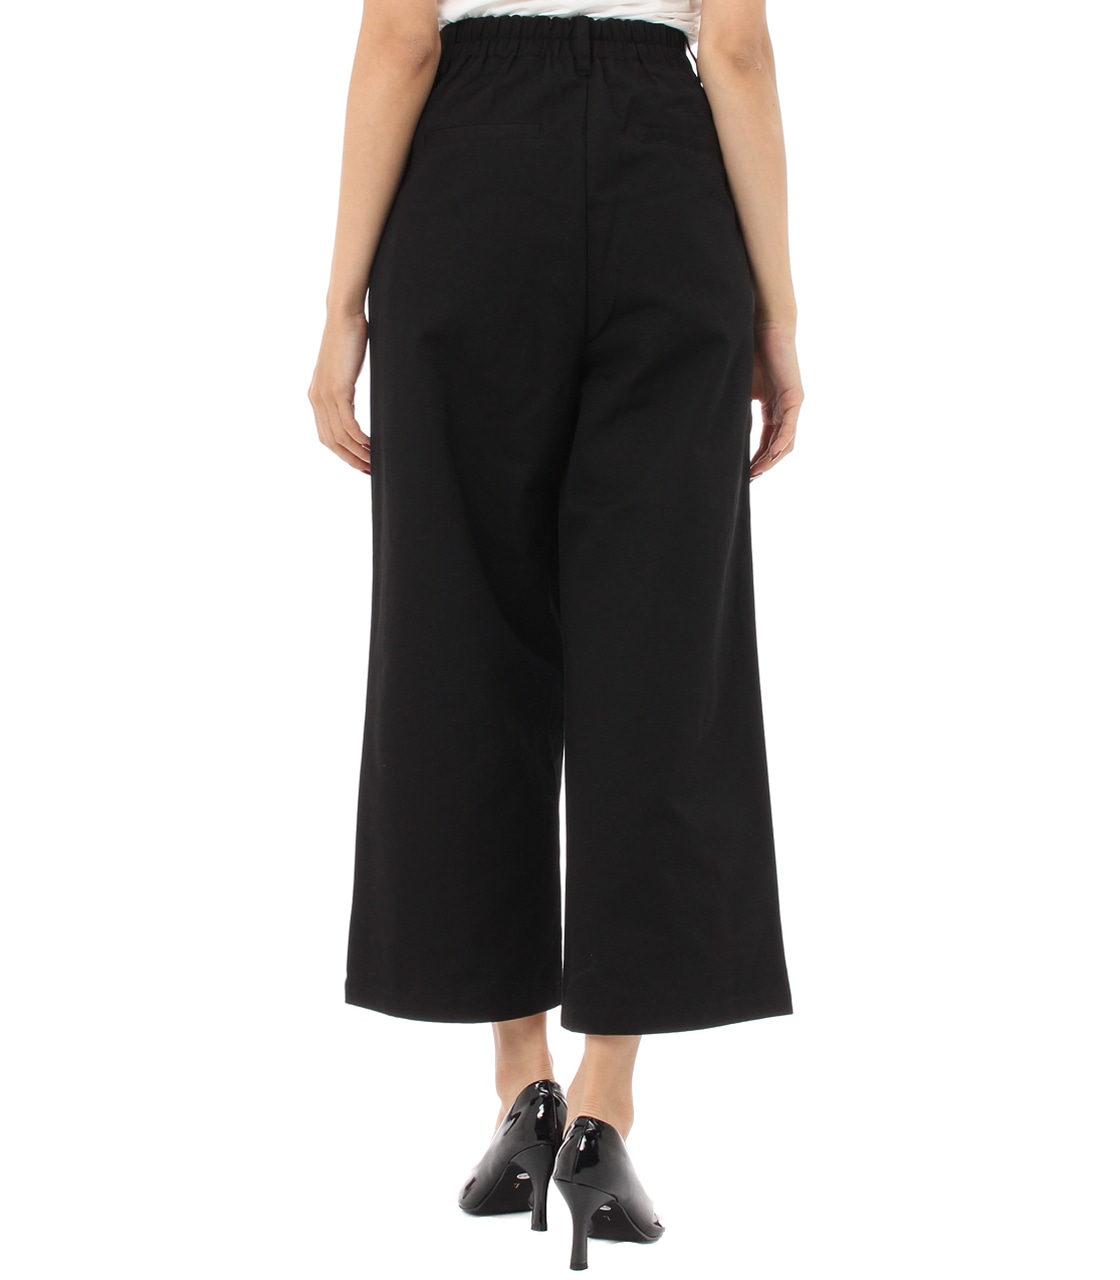 【AZUL BY MOUSSY】綿ツイルタックワイドパンツ 詳細画像 BLK 2